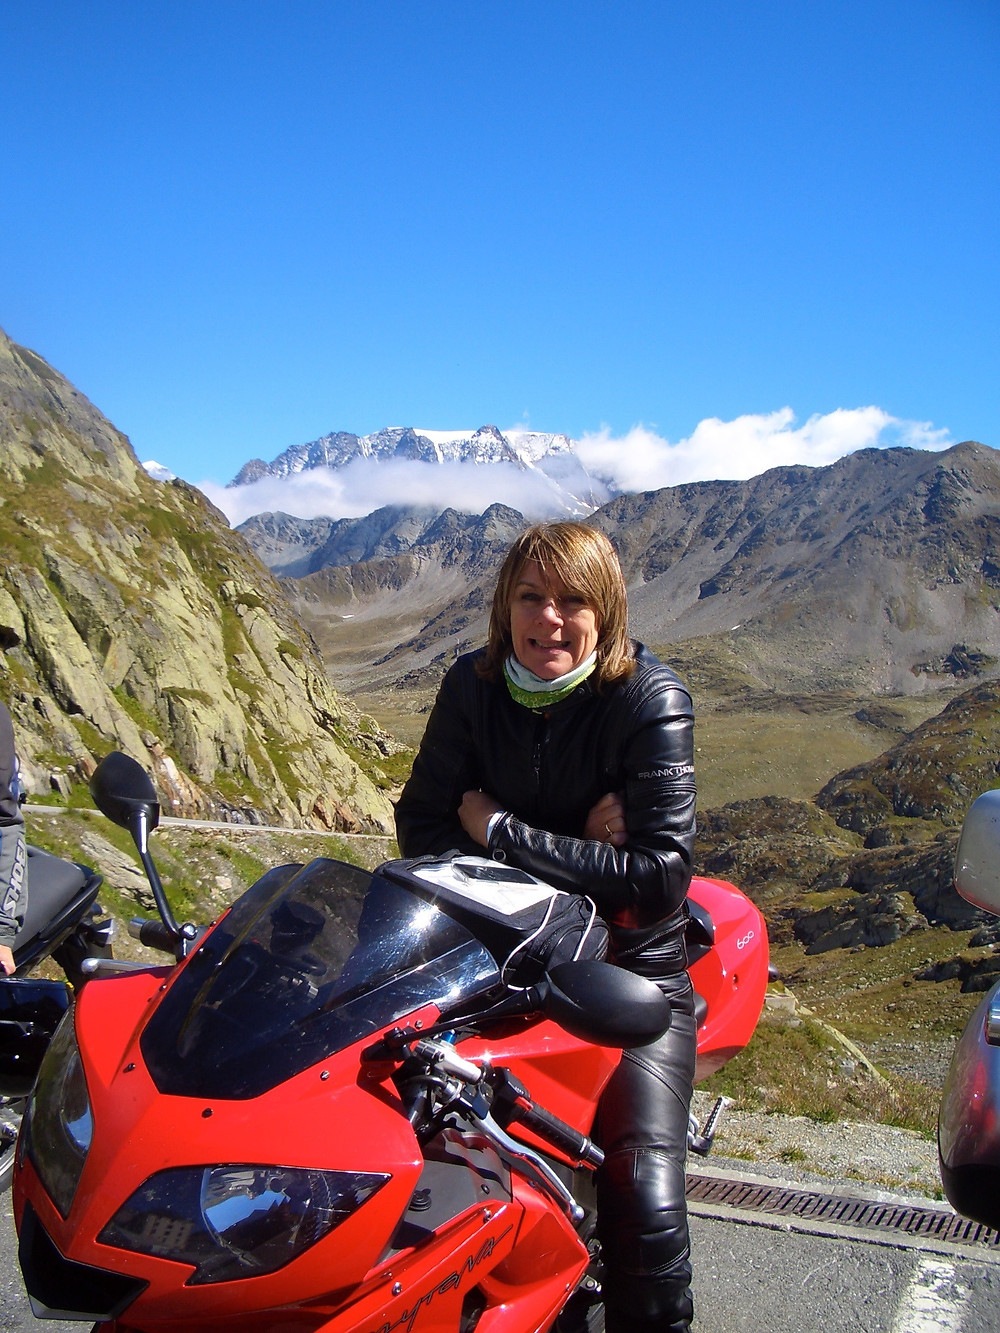 Yoga Teacher Yogawithvickib touring the Alps on her Triumph Daytona motorbike